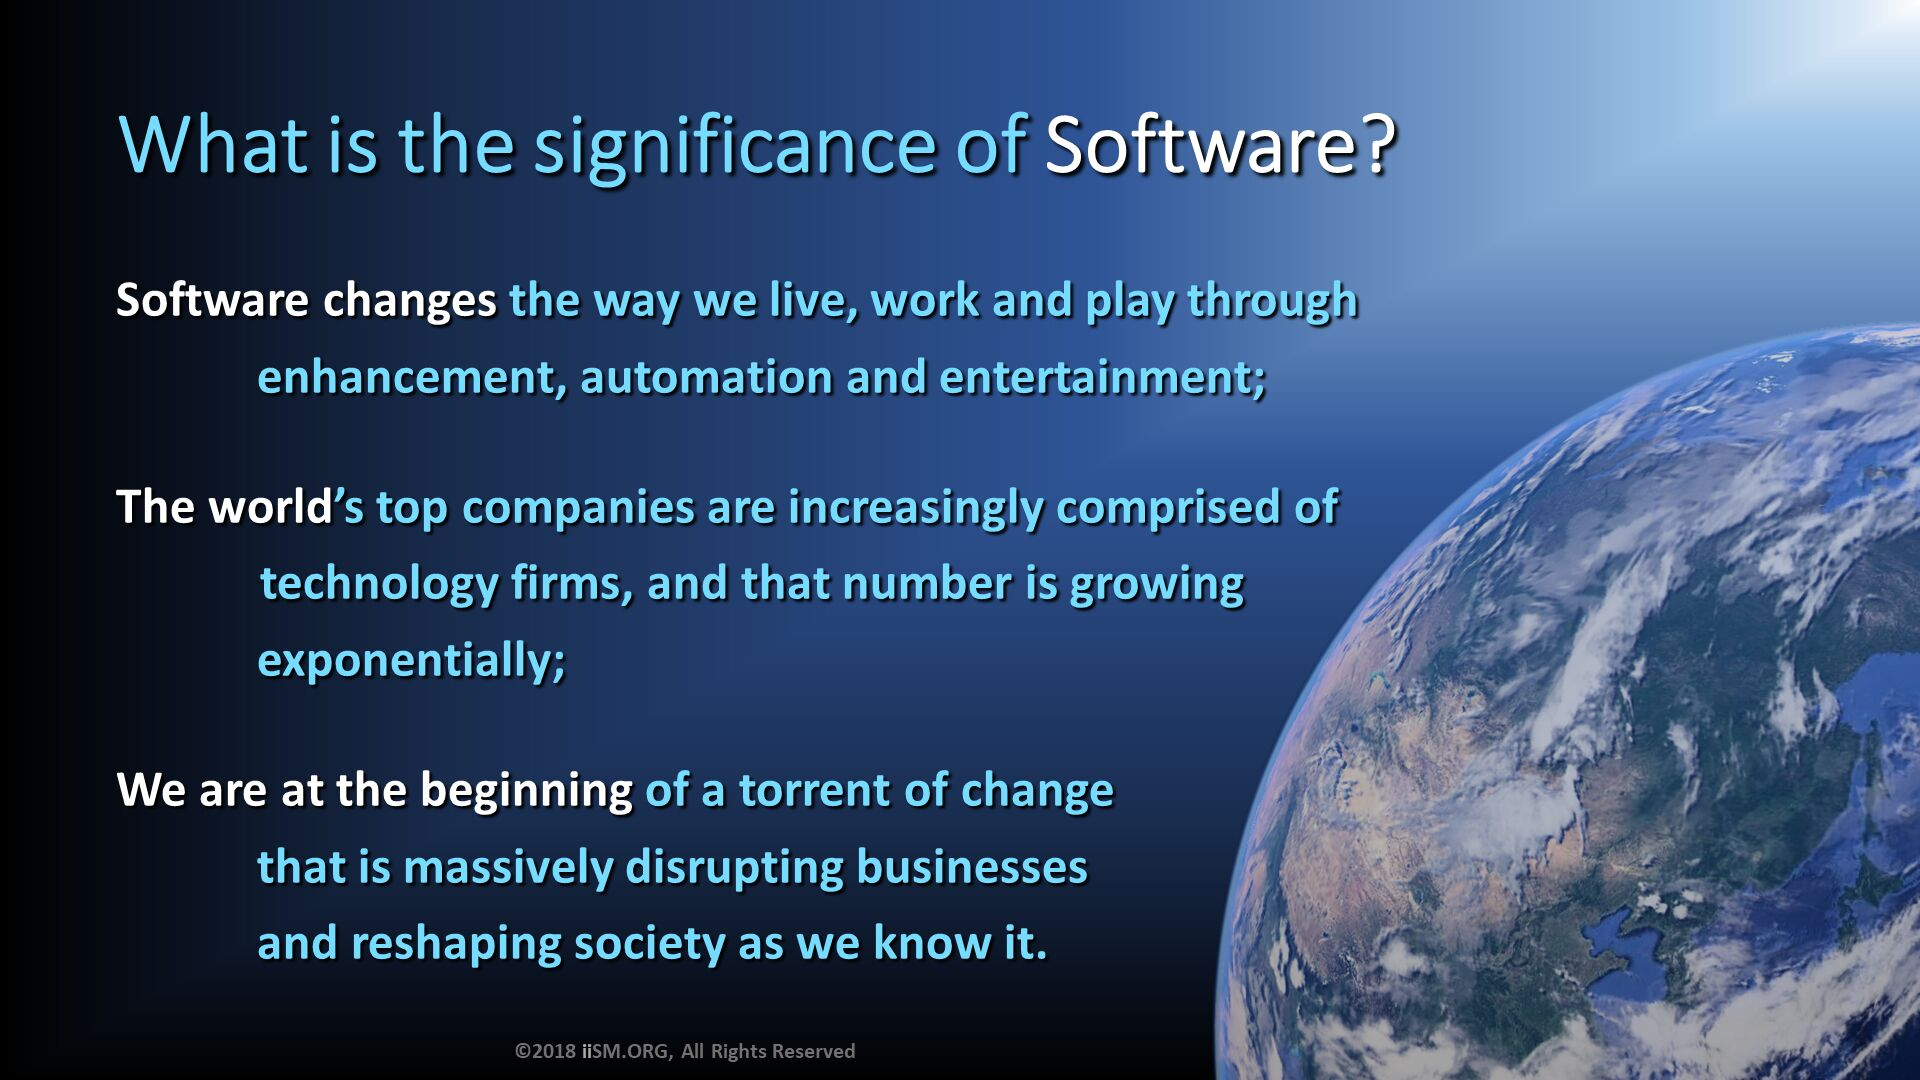 What is the significance of Software?. Software changes the way we live, work and play through             enhancement, automation and entertainment;  The world's top companies are increasingly comprised of  	technology firms, and that number is growing             exponentially;  We are at the beginning of a torrent of change              that is massively disrupting businesses              and reshaping society as we know it. ©2018 iiSM.ORG, All Rights Reserved.